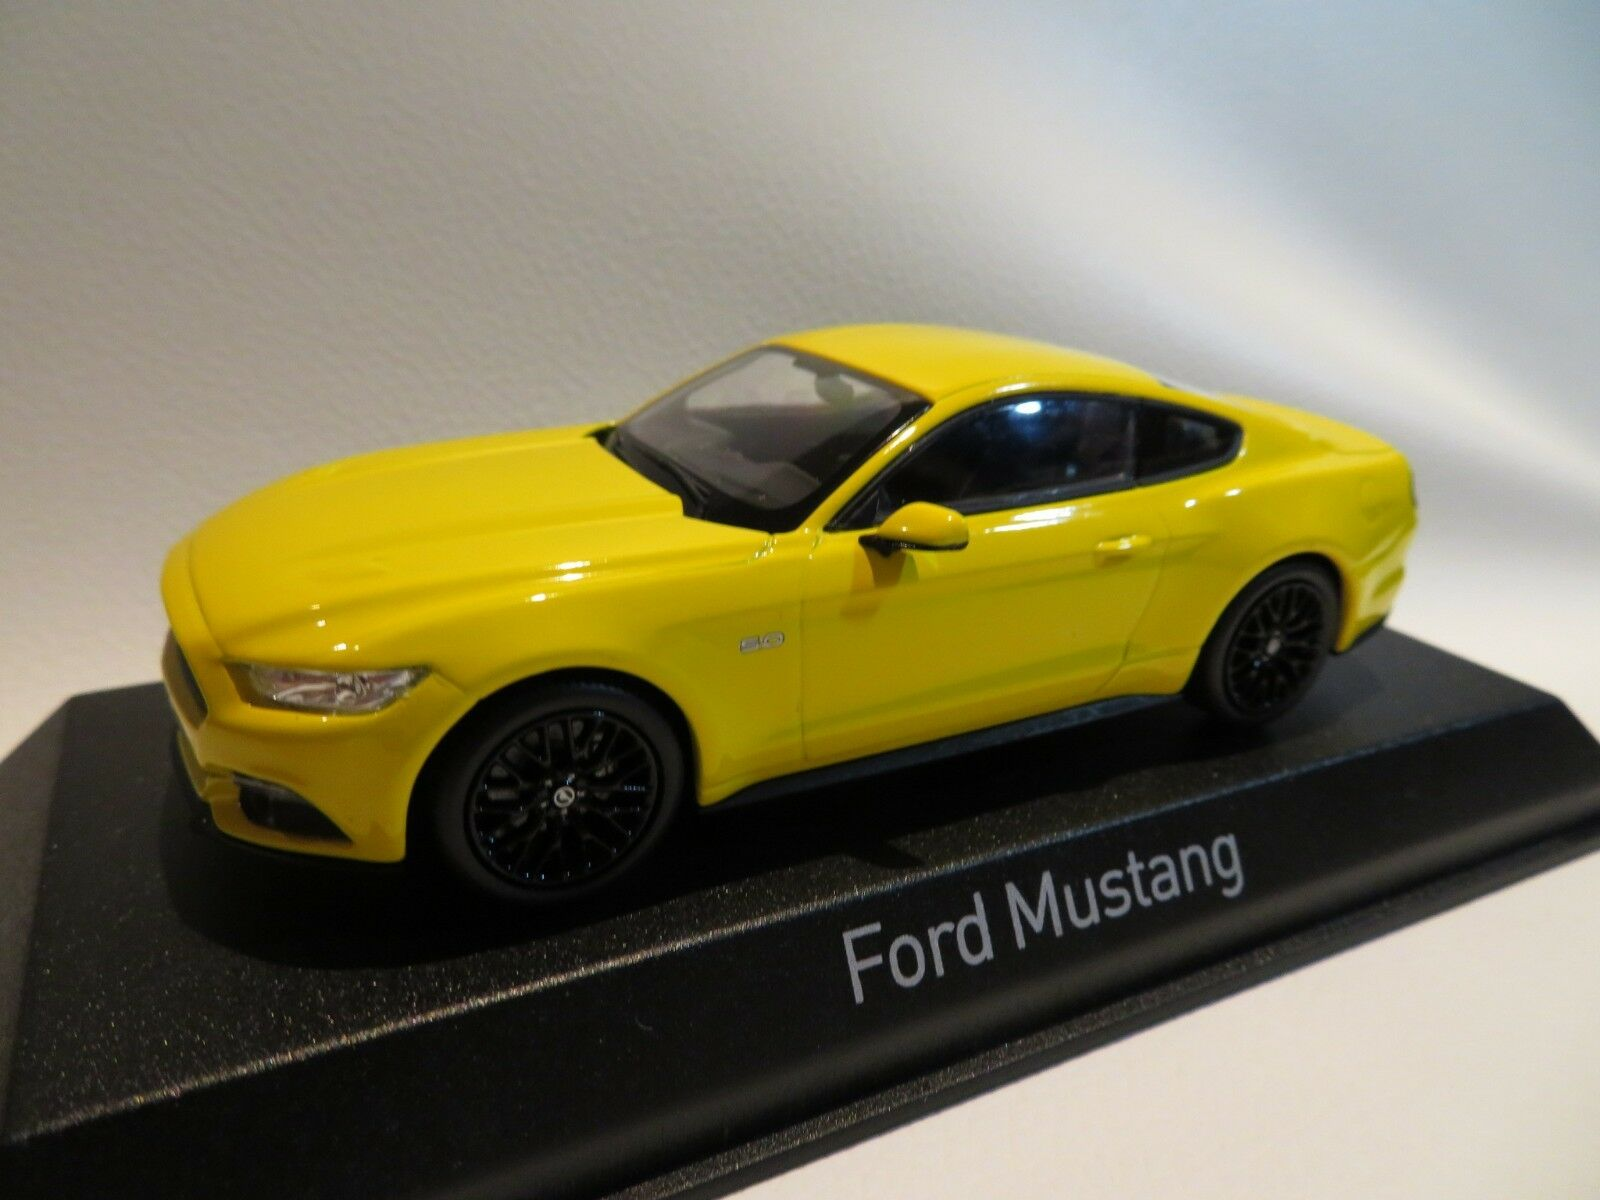 1/43 Norev Ford Mustang Diecast